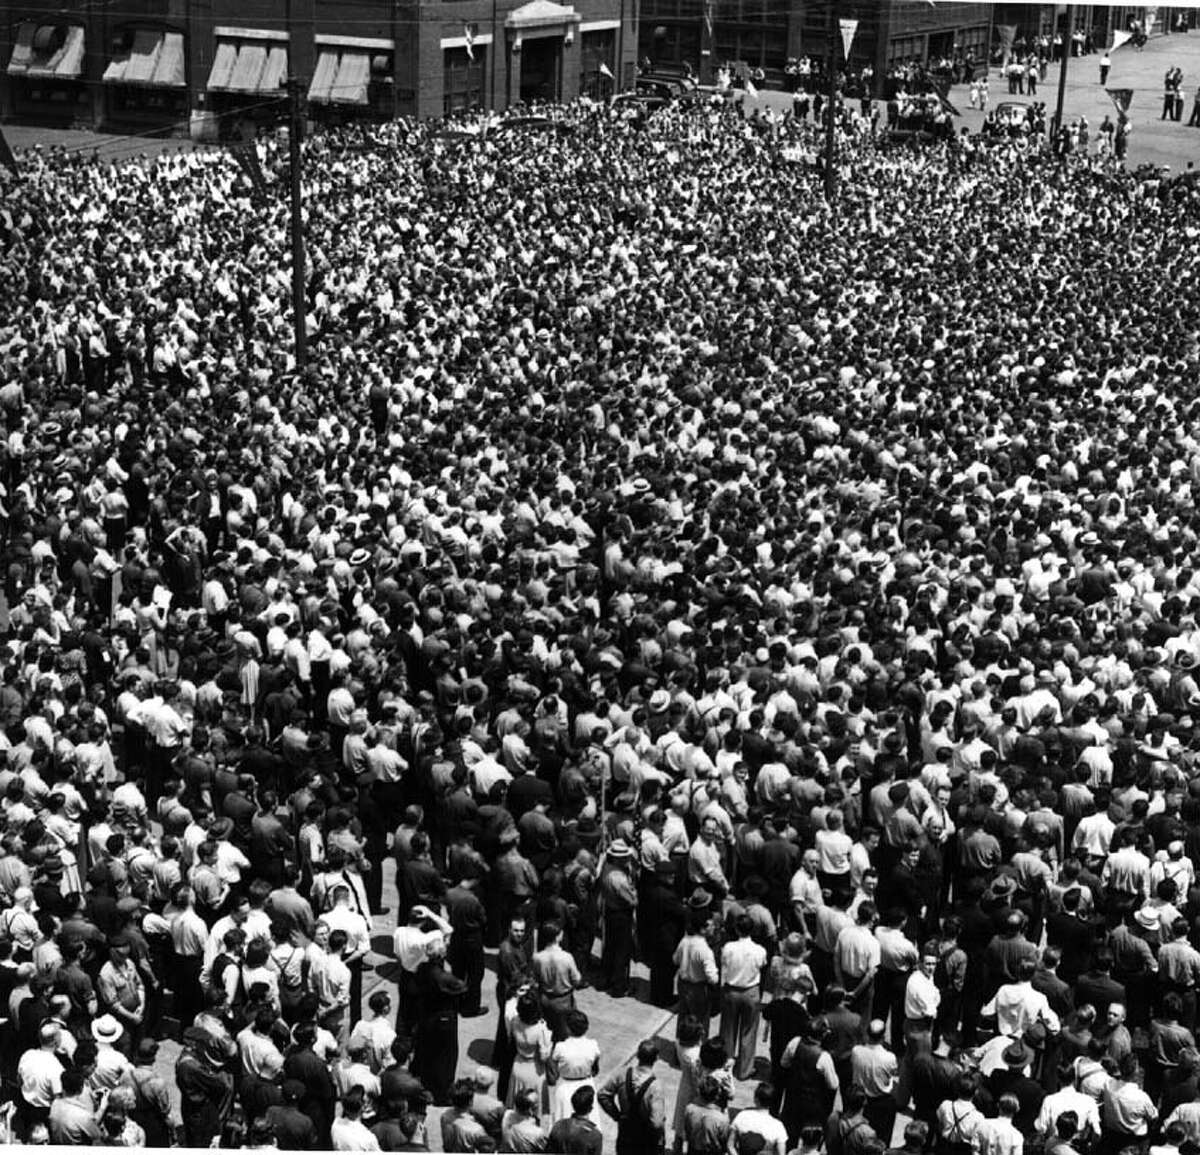 A crowd estimated at 20,000 General Electric workers at the Schenectady plant to see the presentation of the Navy